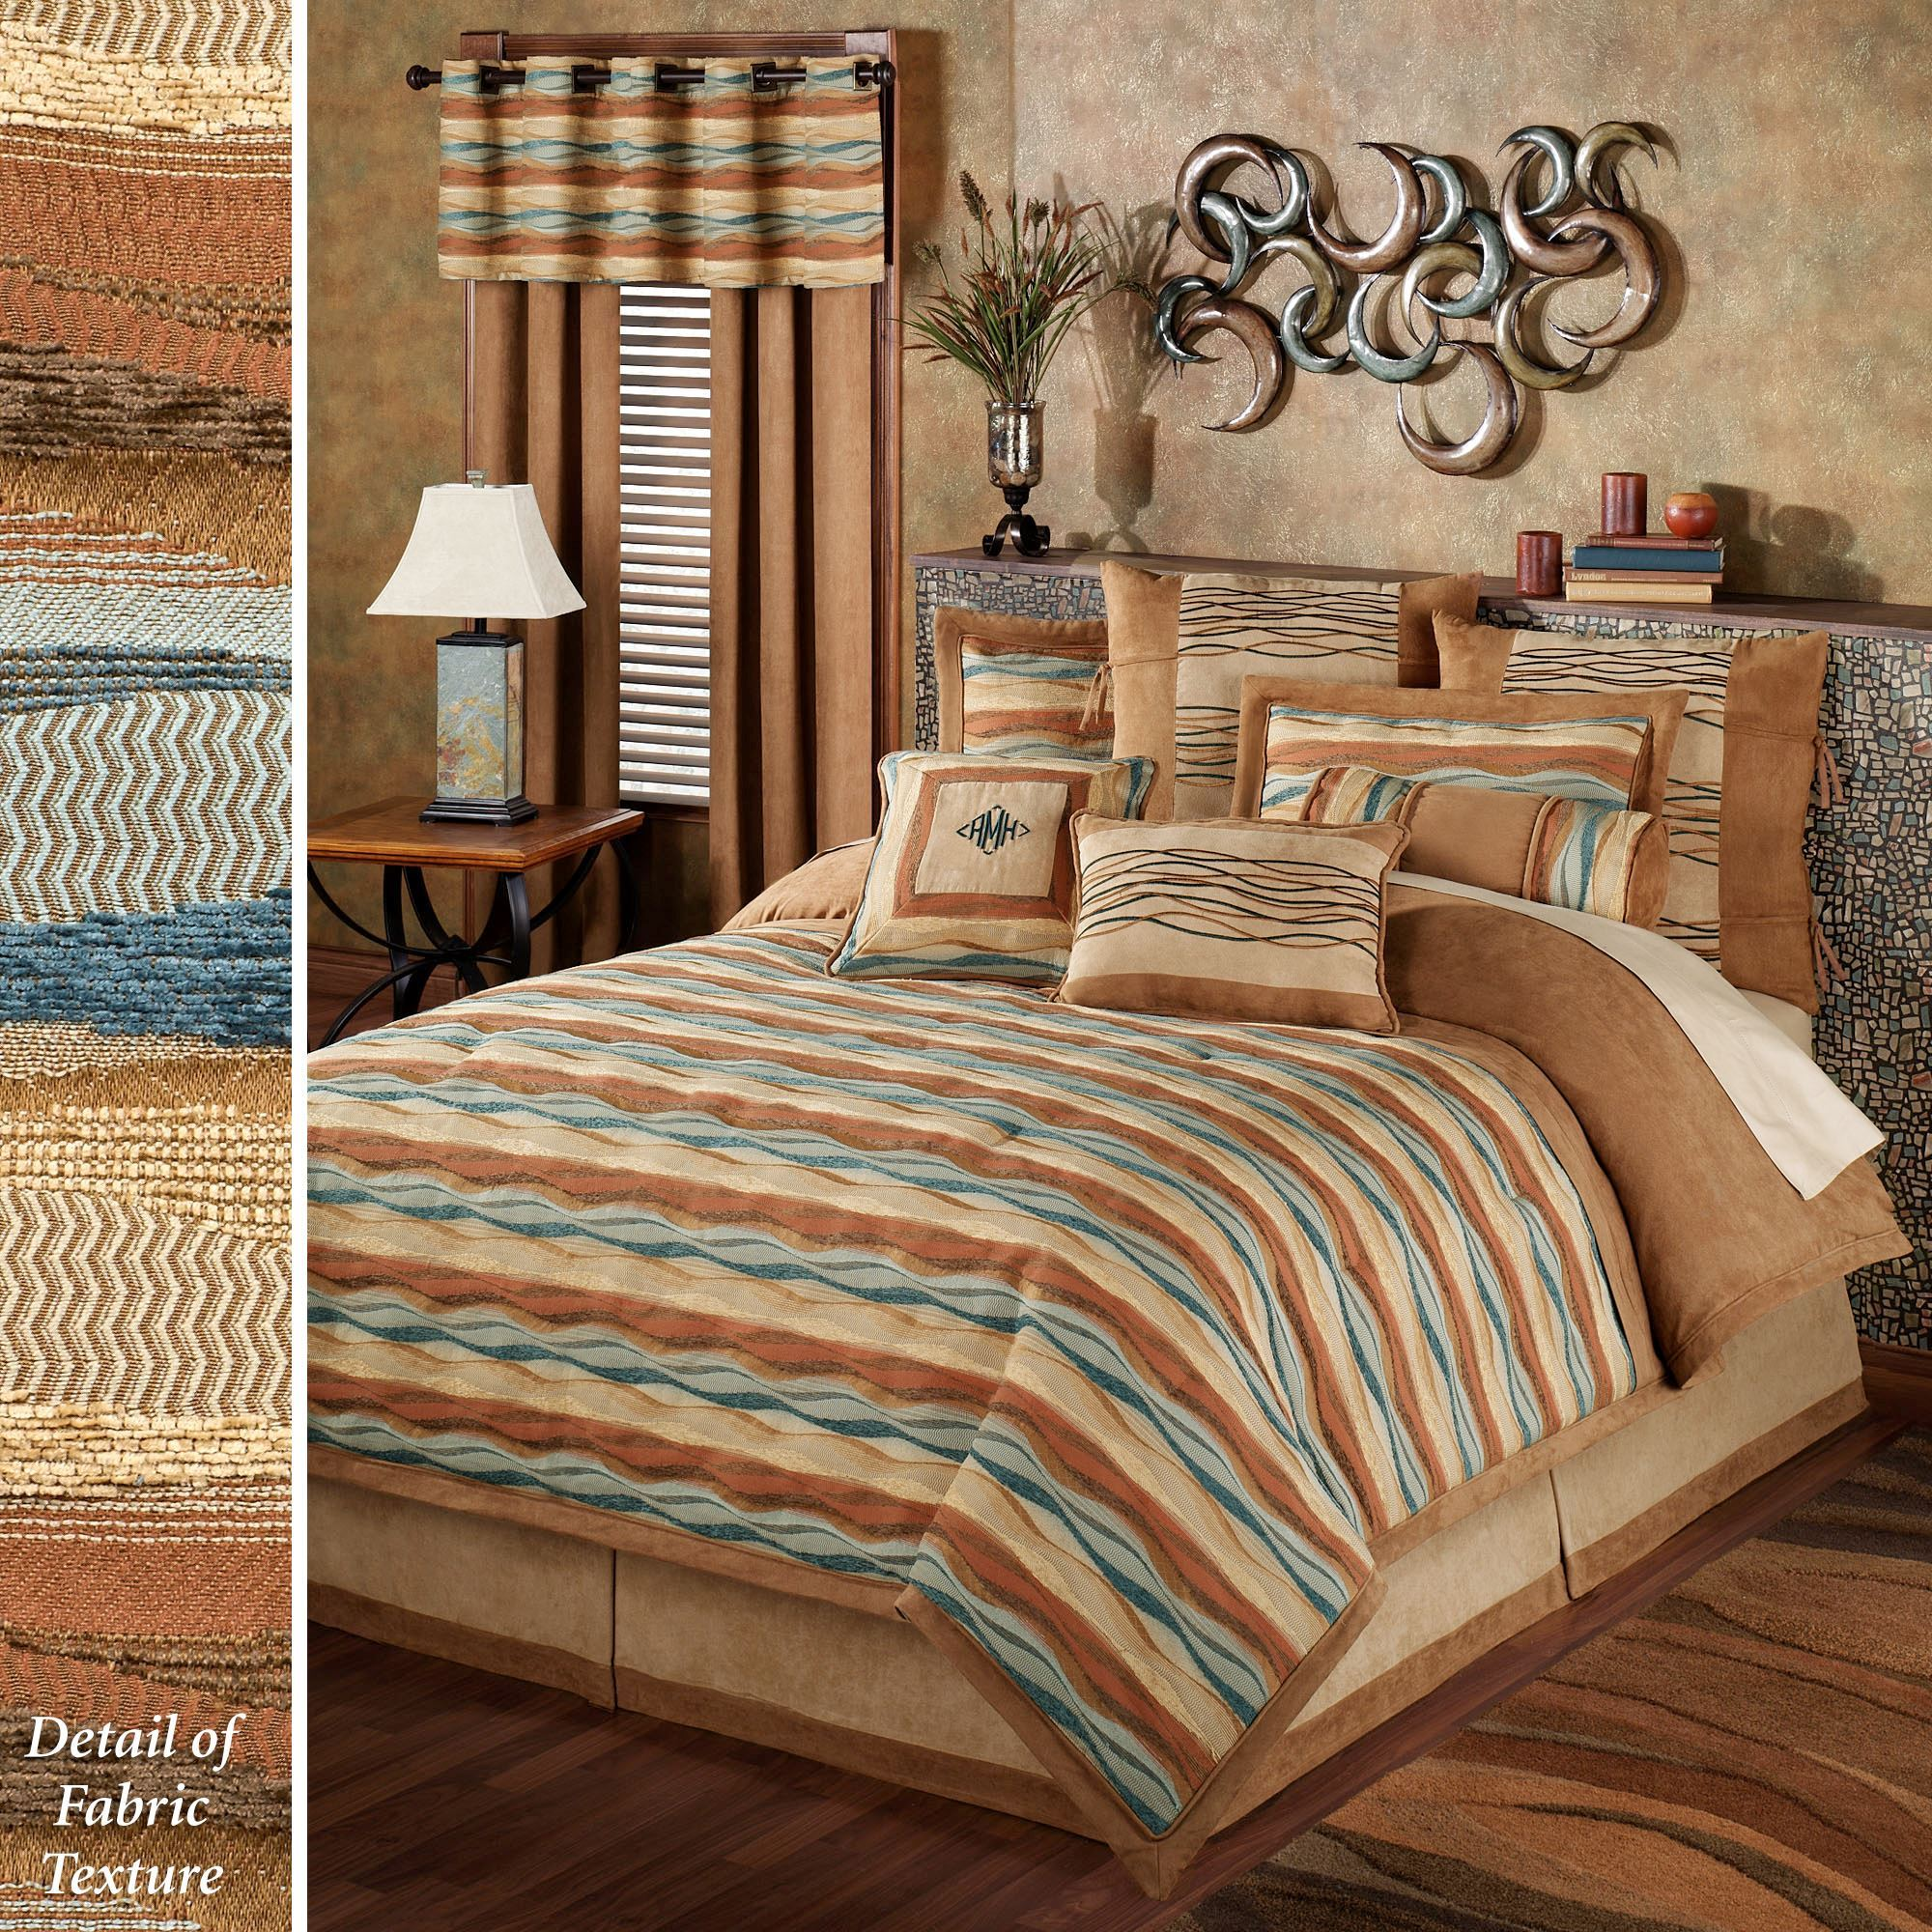 natural bedspread weaved grey cover ticking linen bed stripes striped ruffled stone comforter